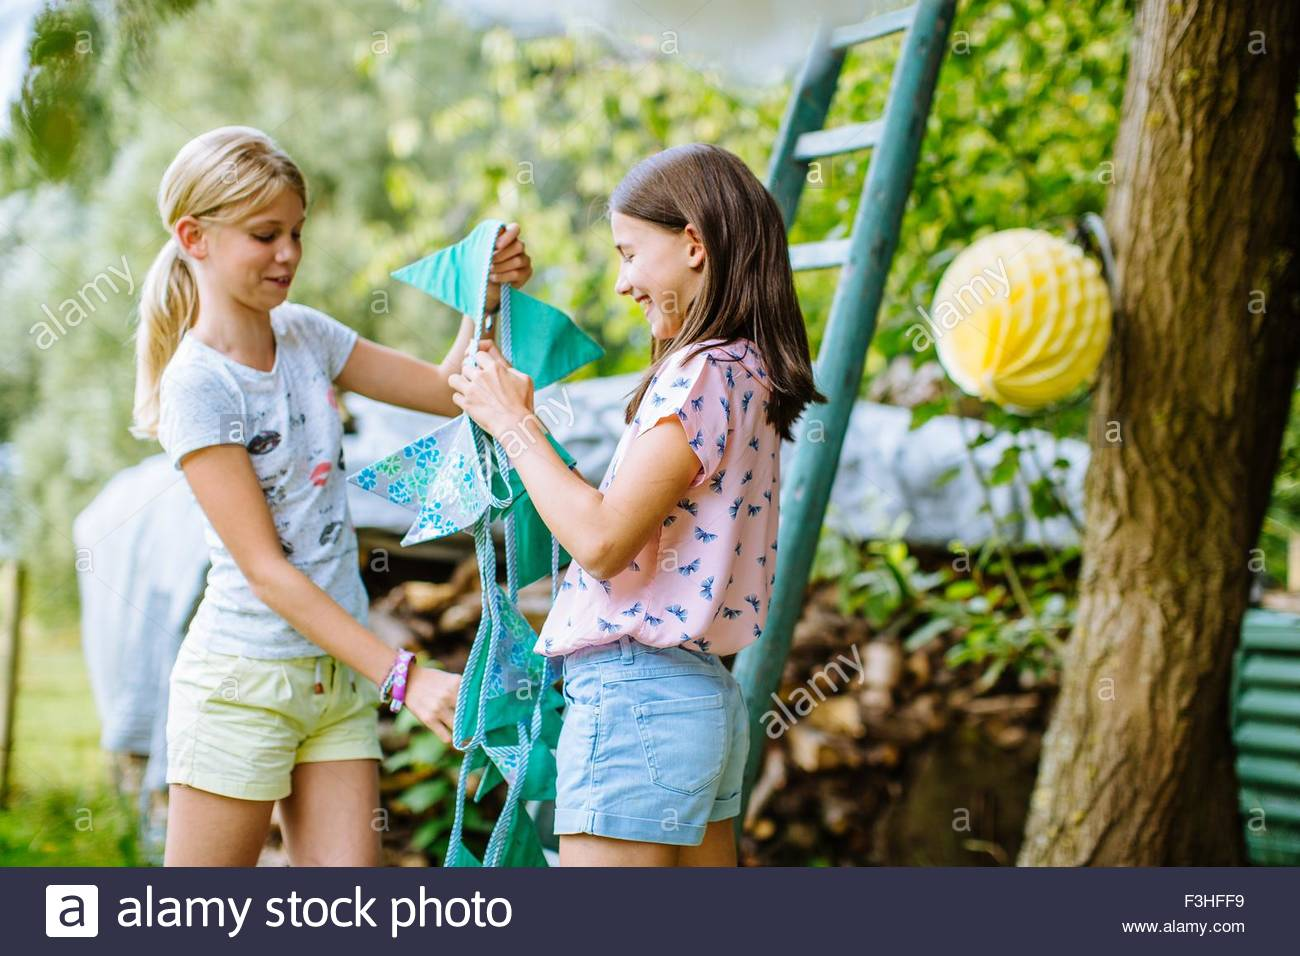 Girls decorating garden for summer party - Stock Image